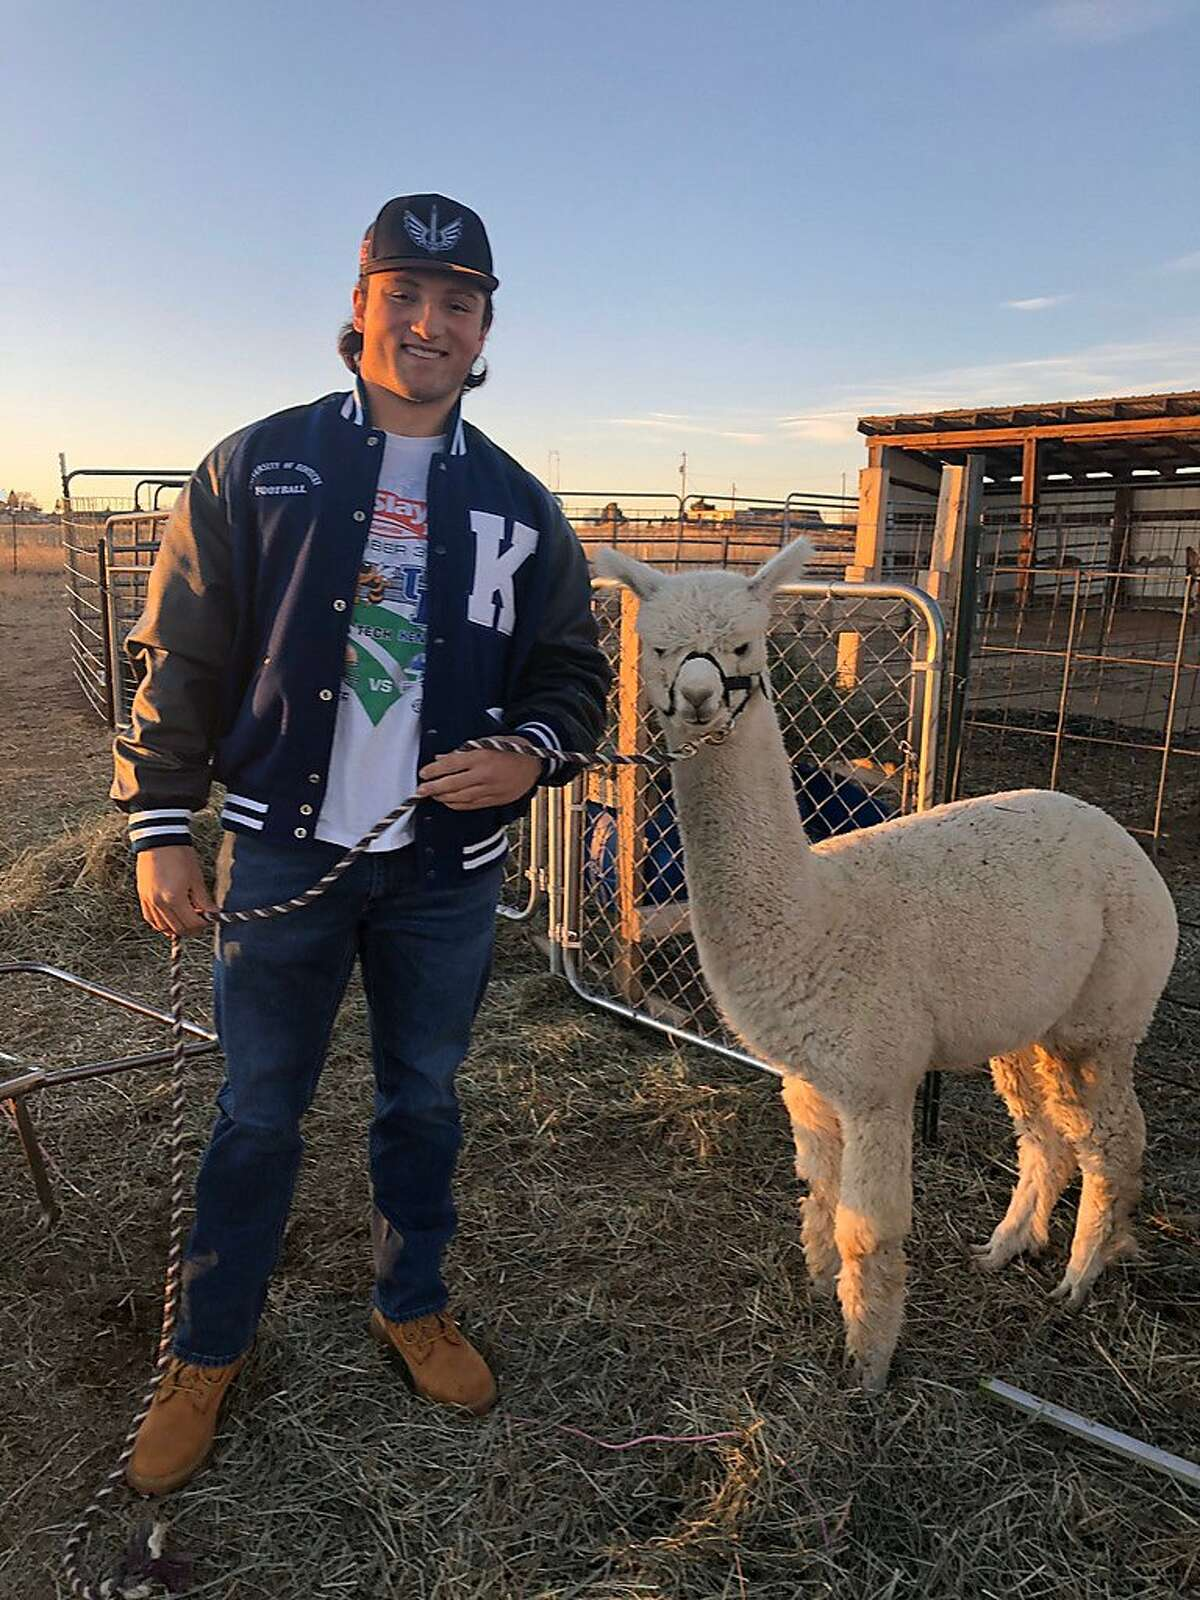 Drew Schlegel poses with an alpaca at Cloverleaf Farms in Elizabeth, Colo. The Cal fullback wants to be an alpaca farmer, among his array of interests. The first sight of the cuddly creatures made him stop his car in Colorado and wander a farm.